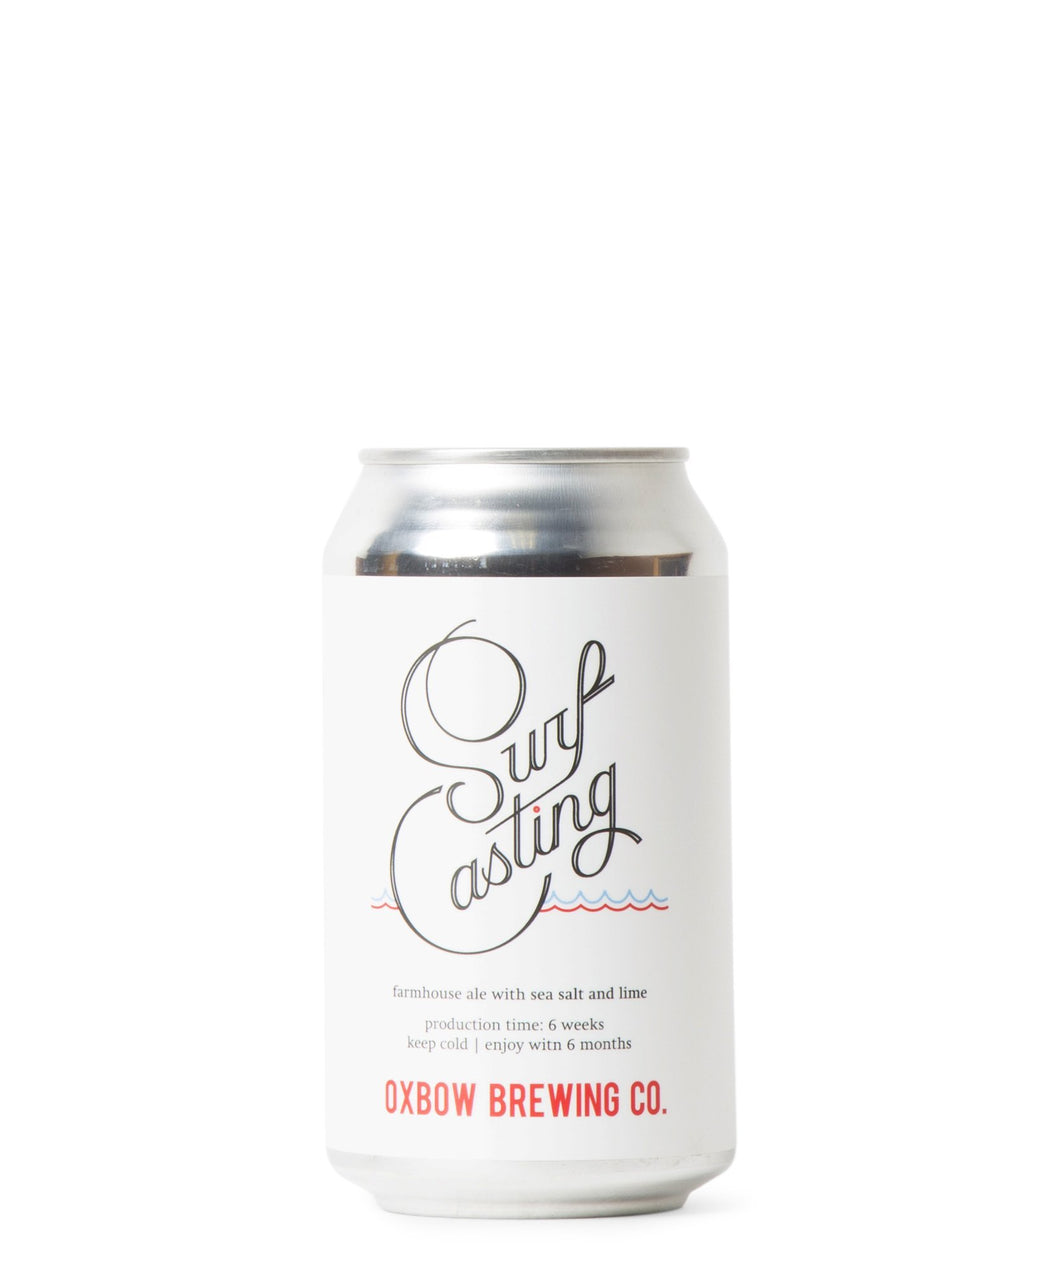 Surfcasting - Oxbow Brewing Company Delivered By TapRm